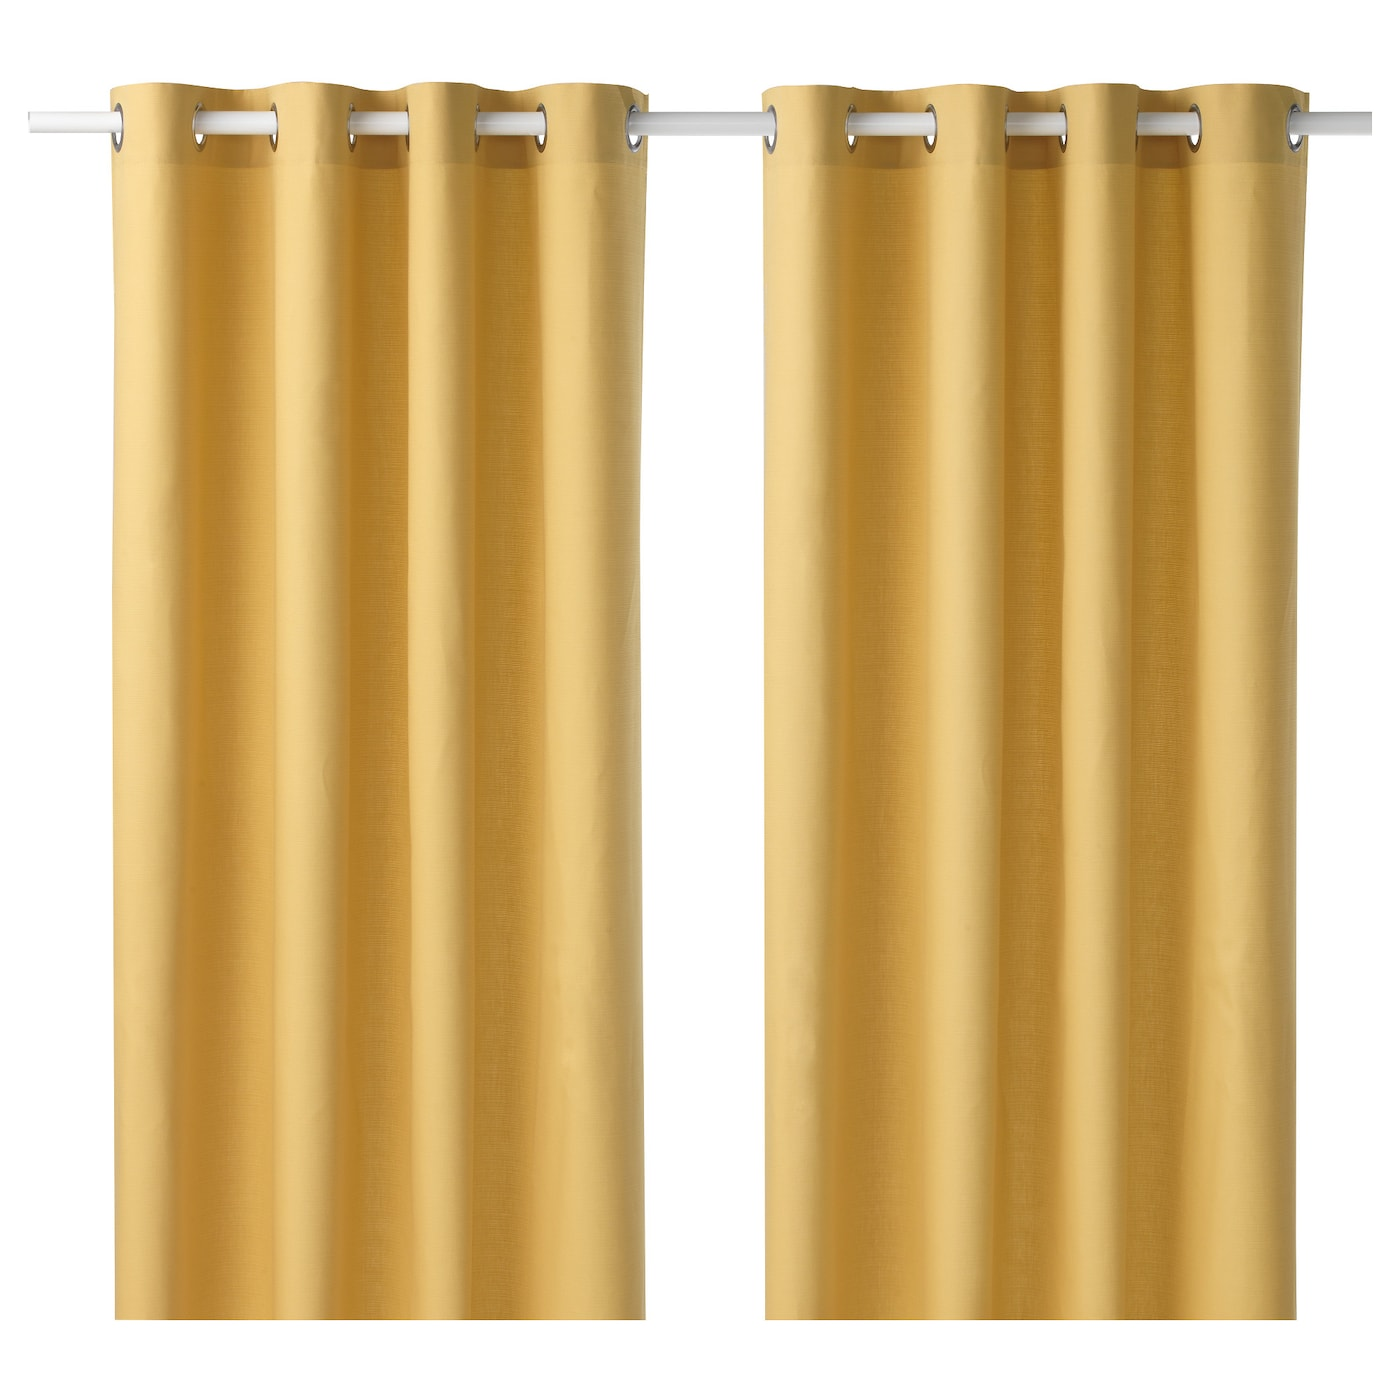 mariam curtains 1 pair yellow 145x250 cm ikea. Black Bedroom Furniture Sets. Home Design Ideas